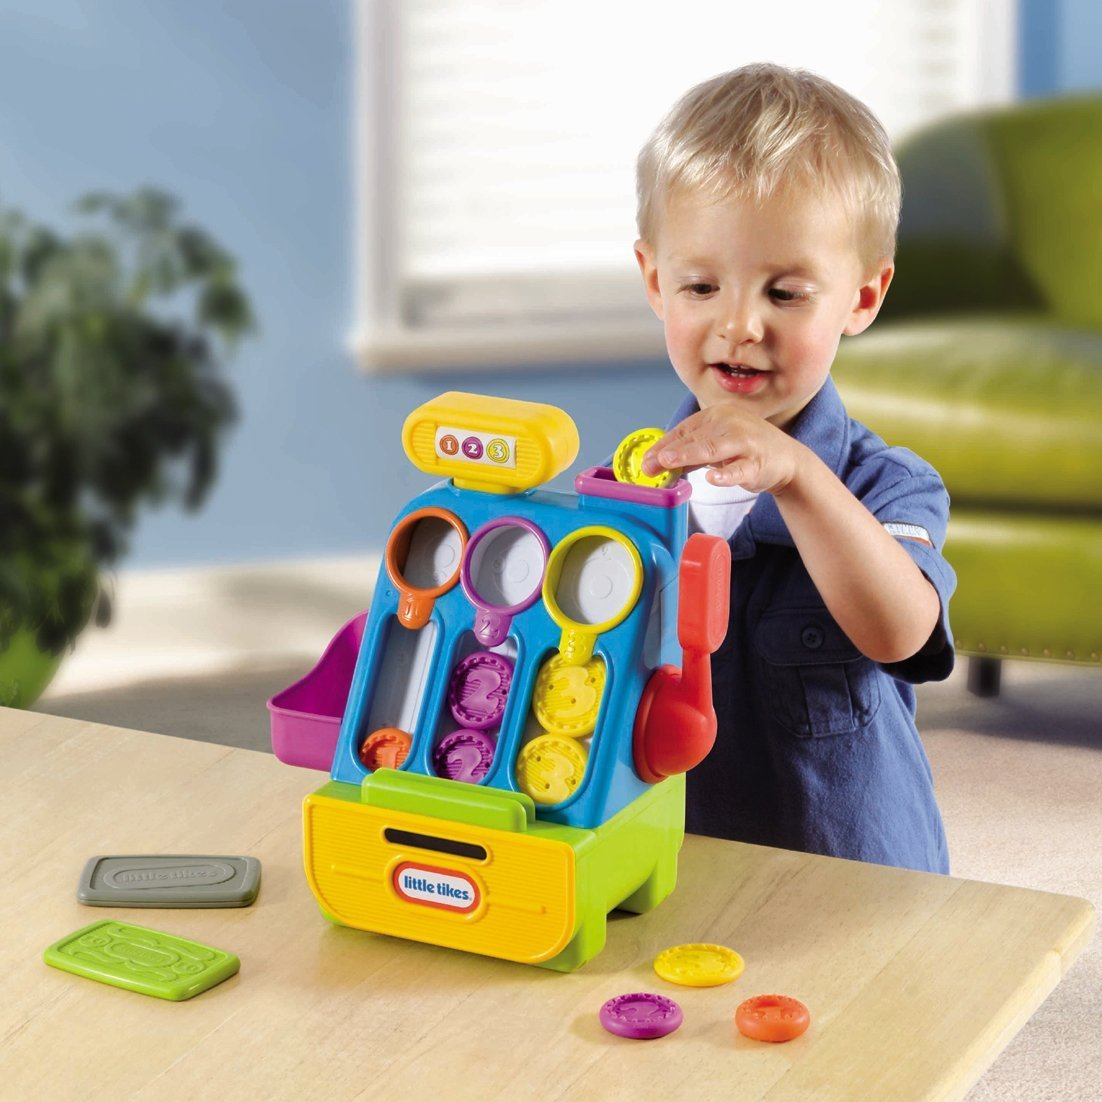 An Image of Little Tikes Count 'n Play Cash Register